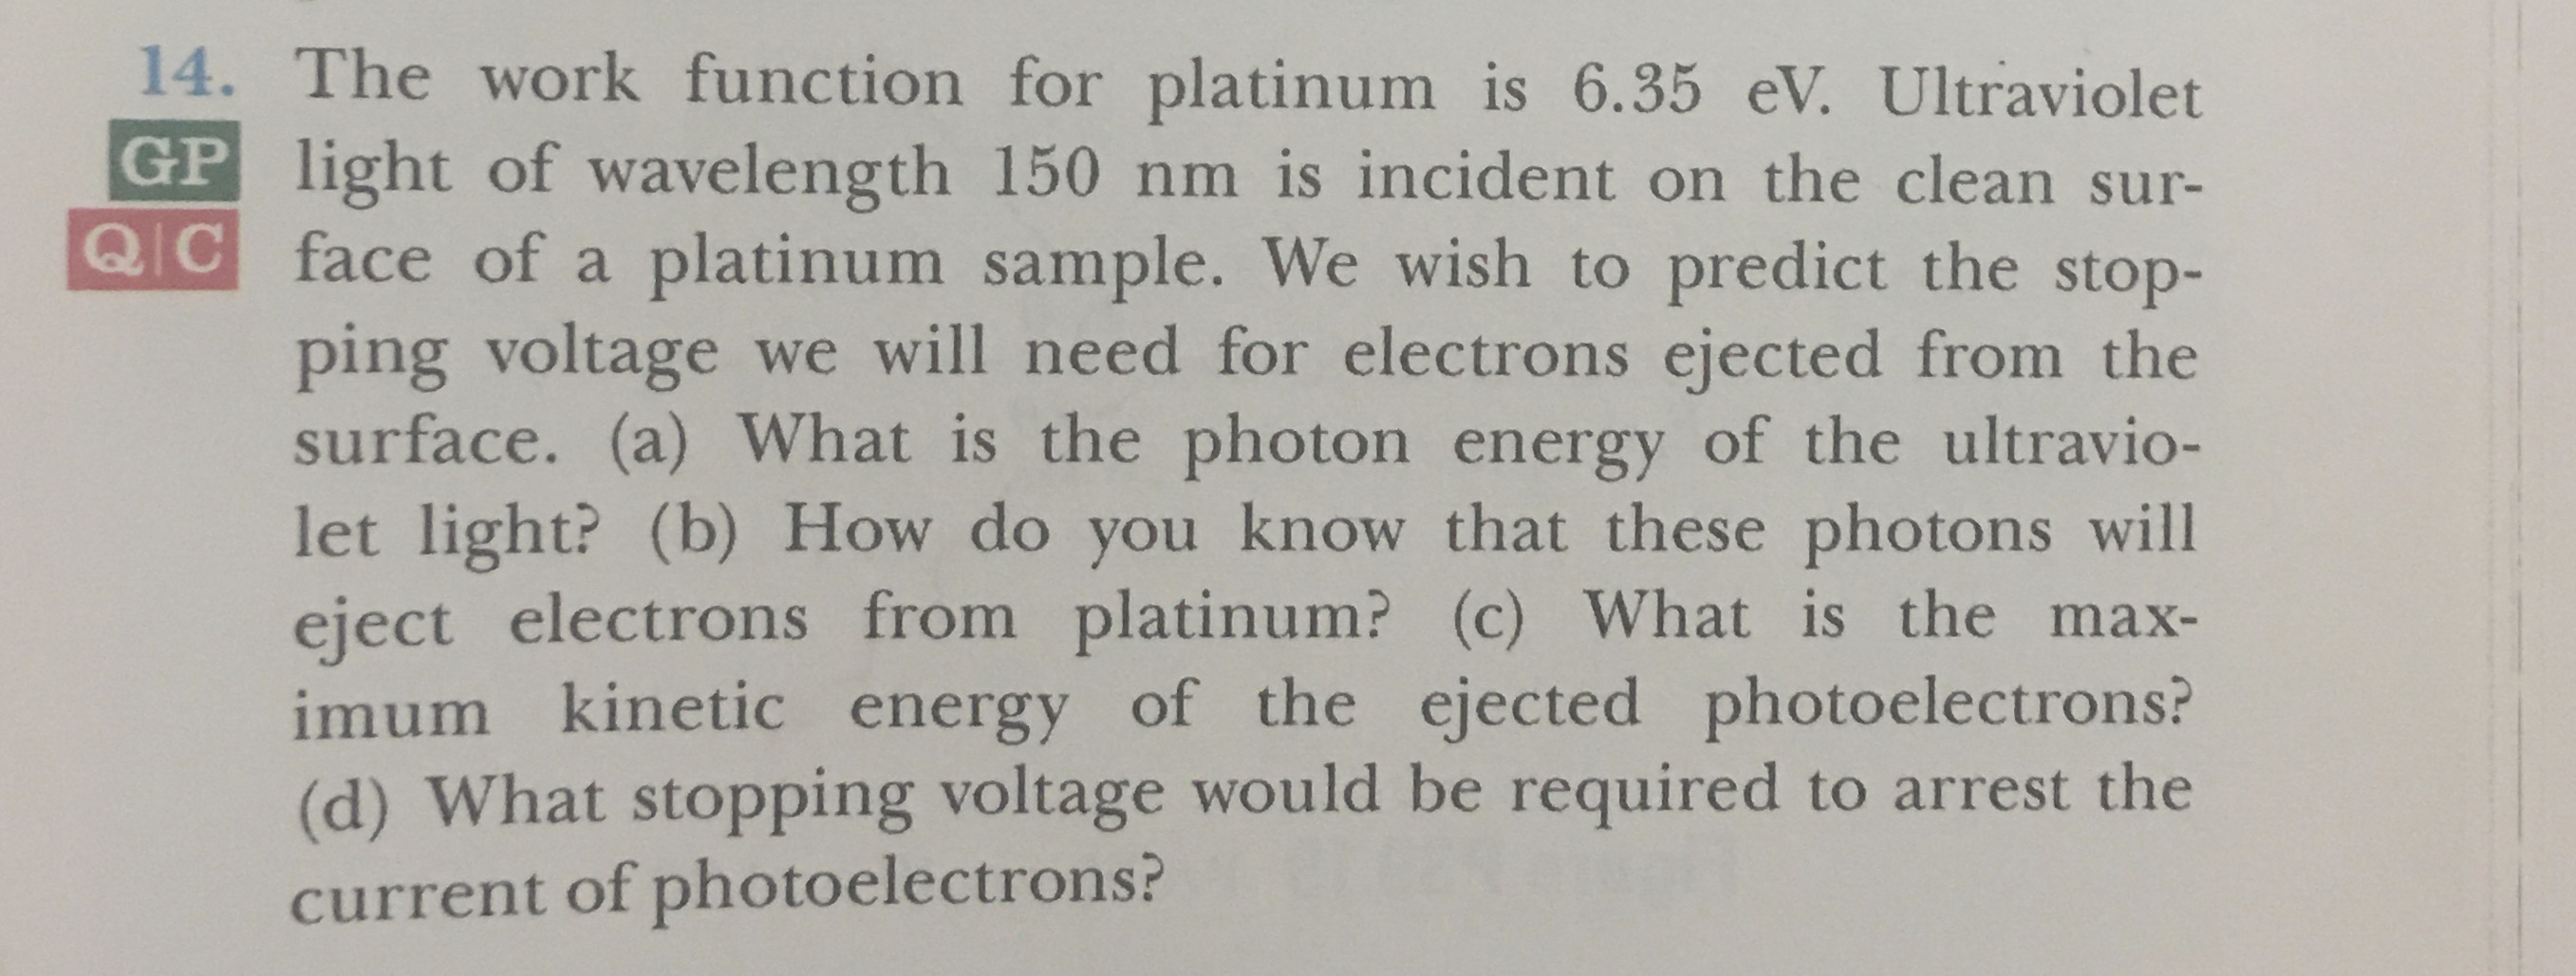 14. The work function for platinum is 6.35 eV. Ultraviolet GP light of wavelength 150 nm is incident on the clean sur- Q C face of a platinum sample. We wish to predict the stop- ping voltage we will need for electrons ejected from the surface. (a) What is the photon energy of the ultravio- let light? (b) How do you know that these photons will eject electrons from platinum? (c) What is the imum kinetic energy of the ejected photoelectrons? (d) What stopping voltage would be required to arrest the current of photoelectrons ? max-